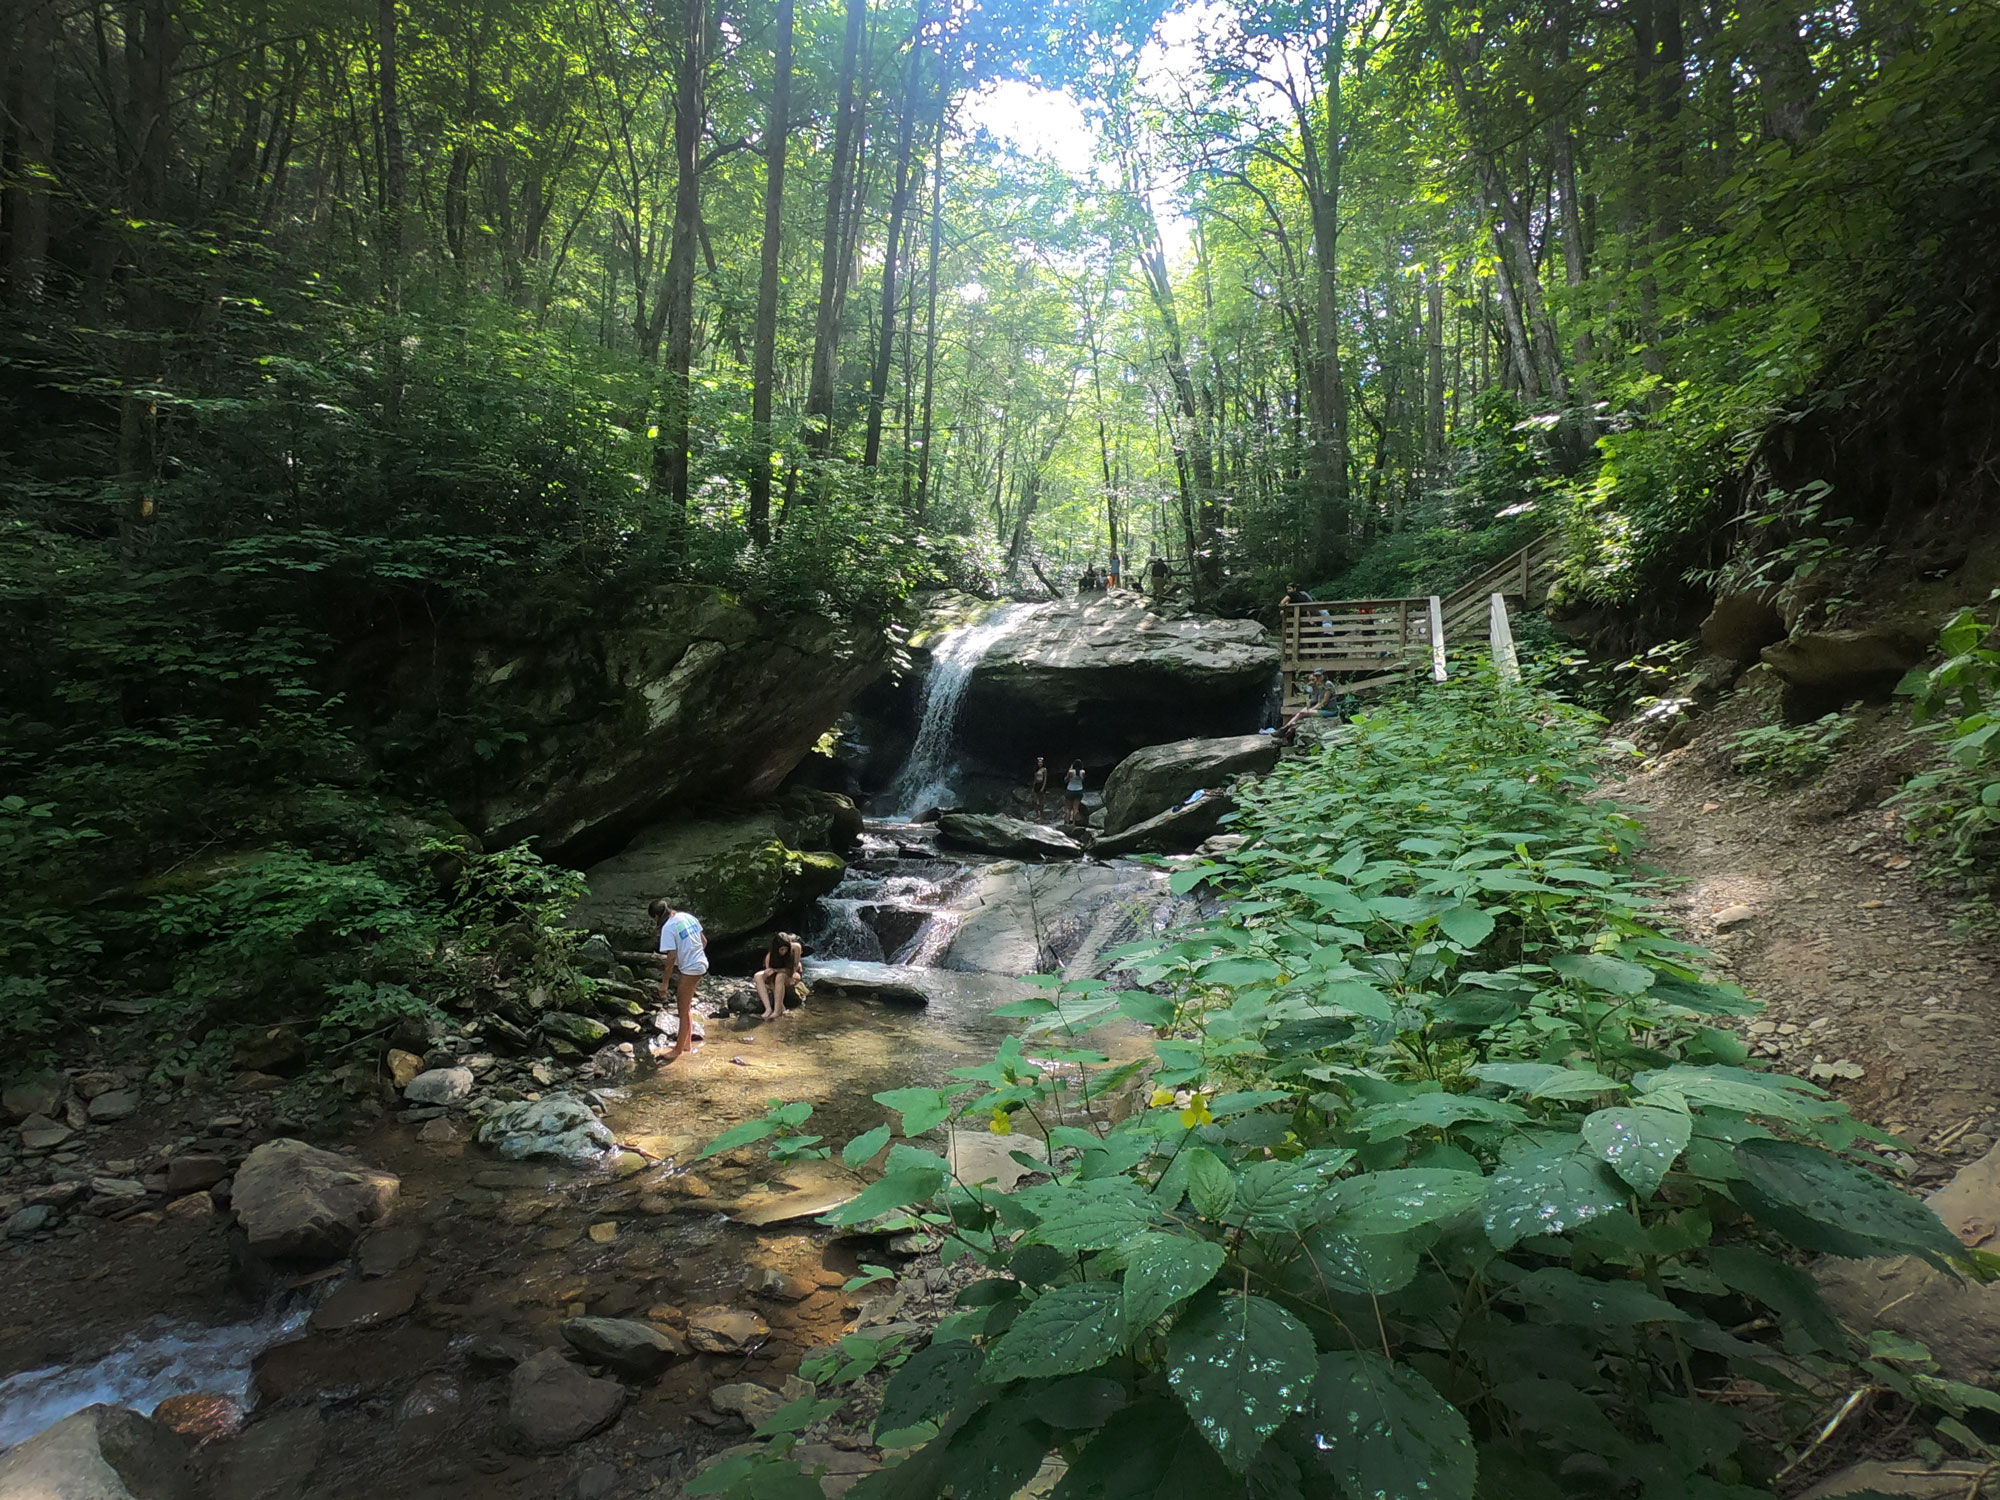 People swimming in the Otter Falls, near Blue Ridge Parkway, North Carolina